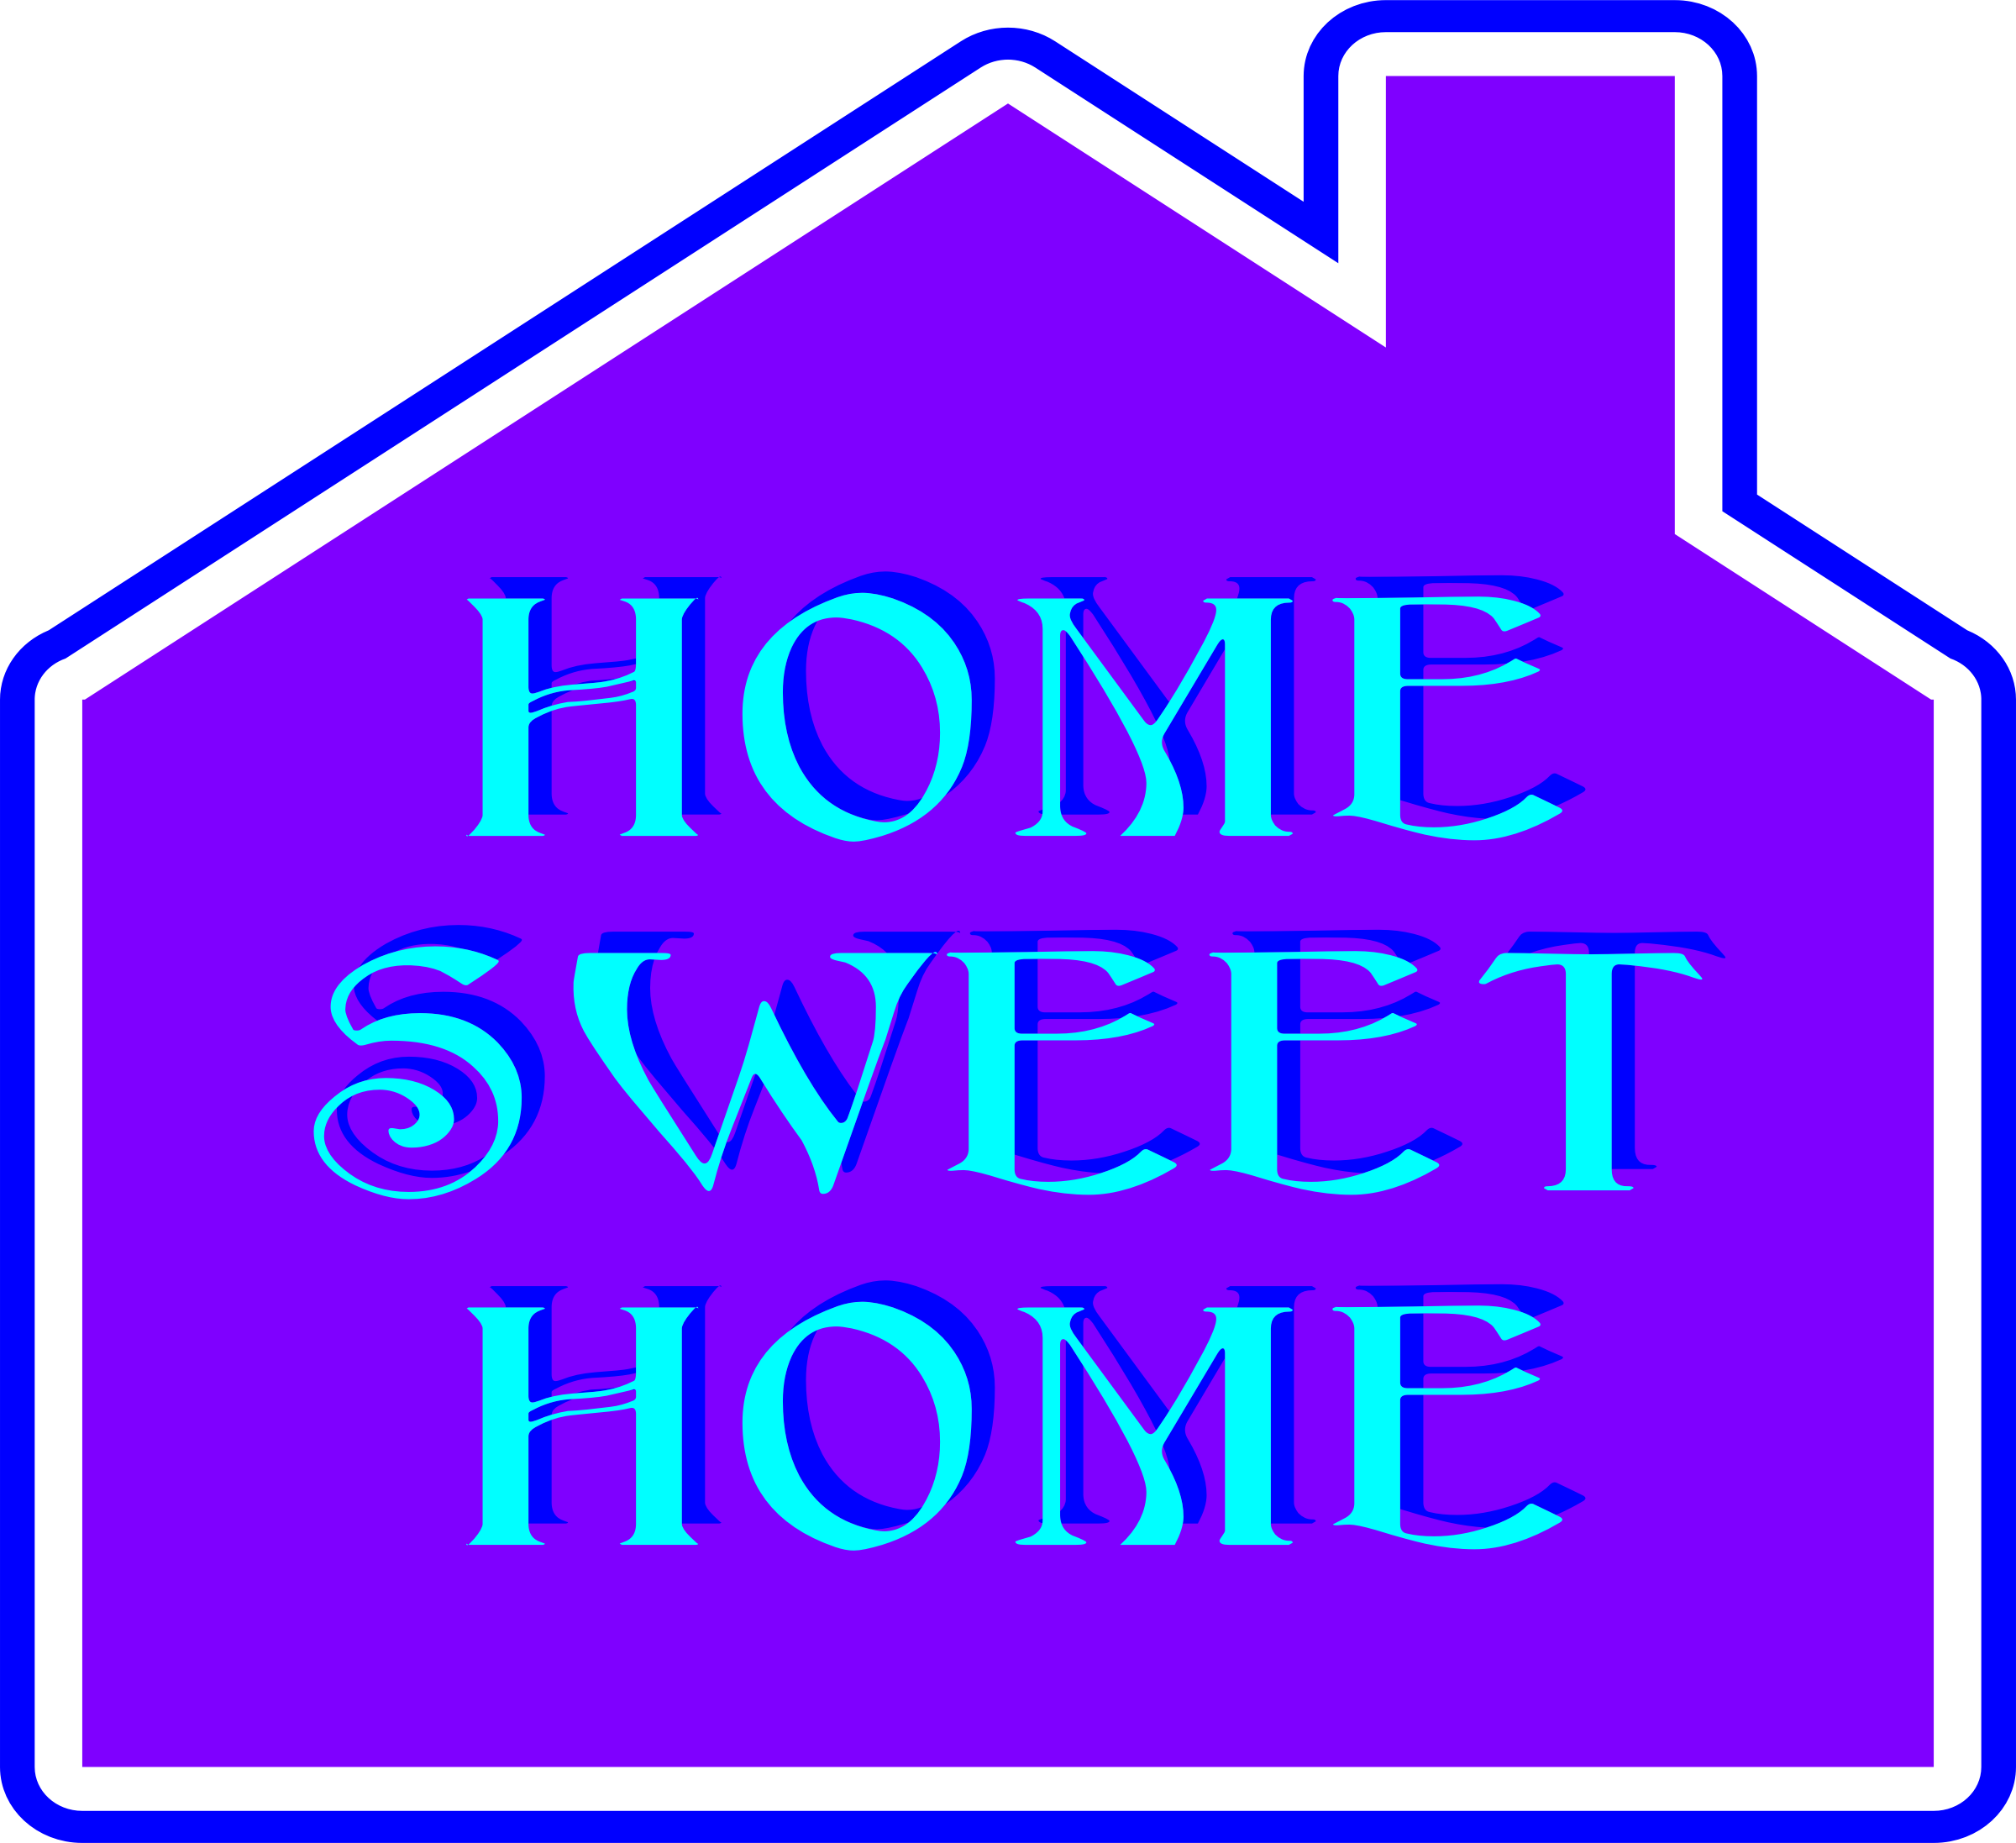 Home Sweet Home 2 by bobby520